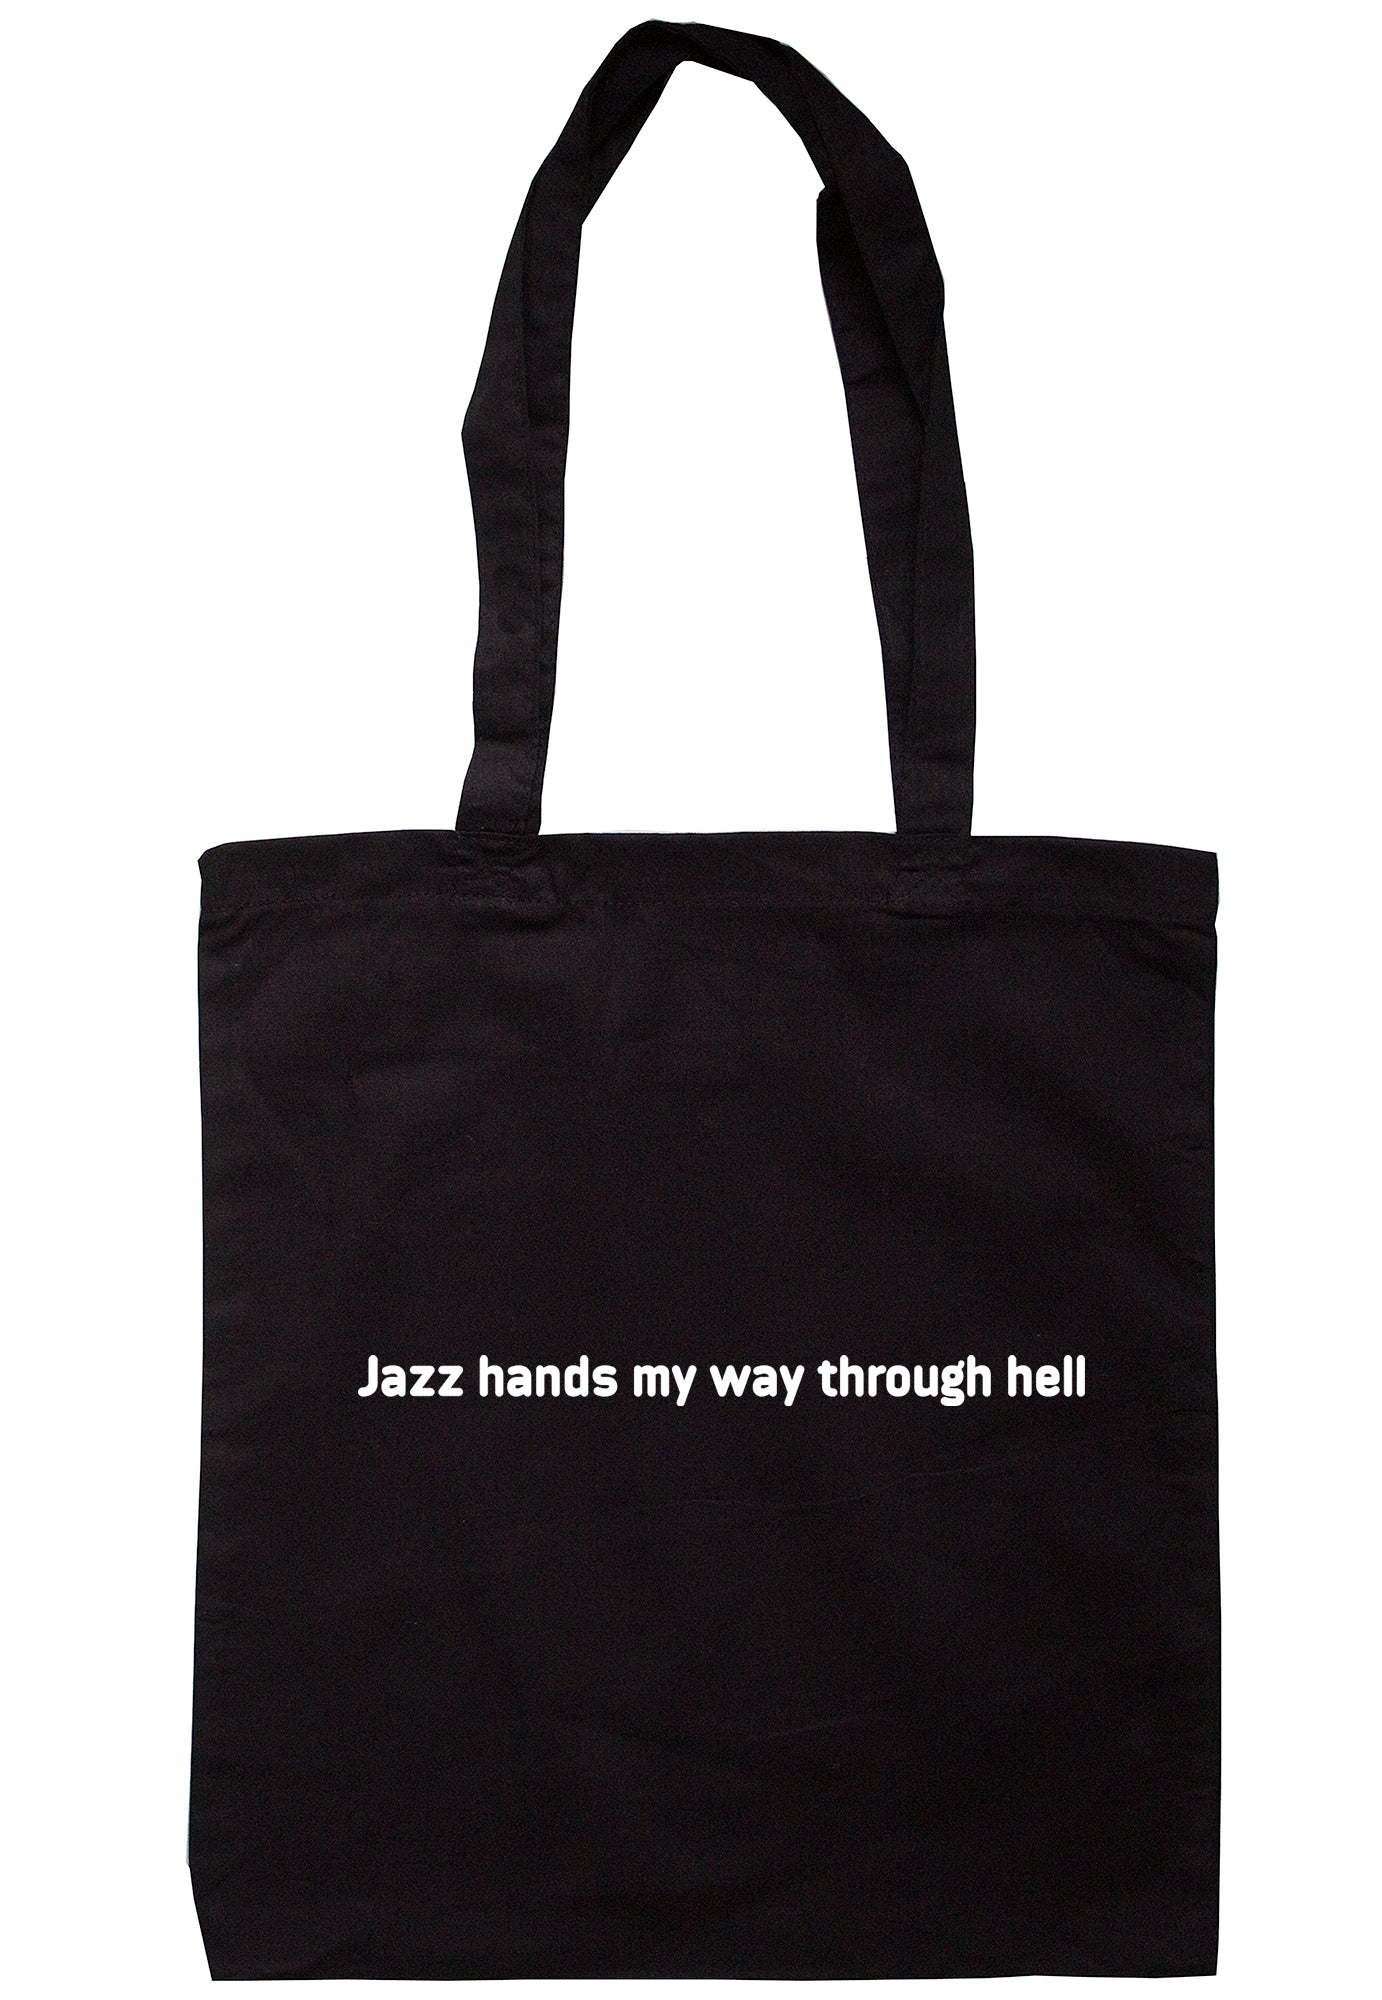 Jazz Hands My Way Through Hell Tote Bag S1115 - Illustrated Identity Ltd.